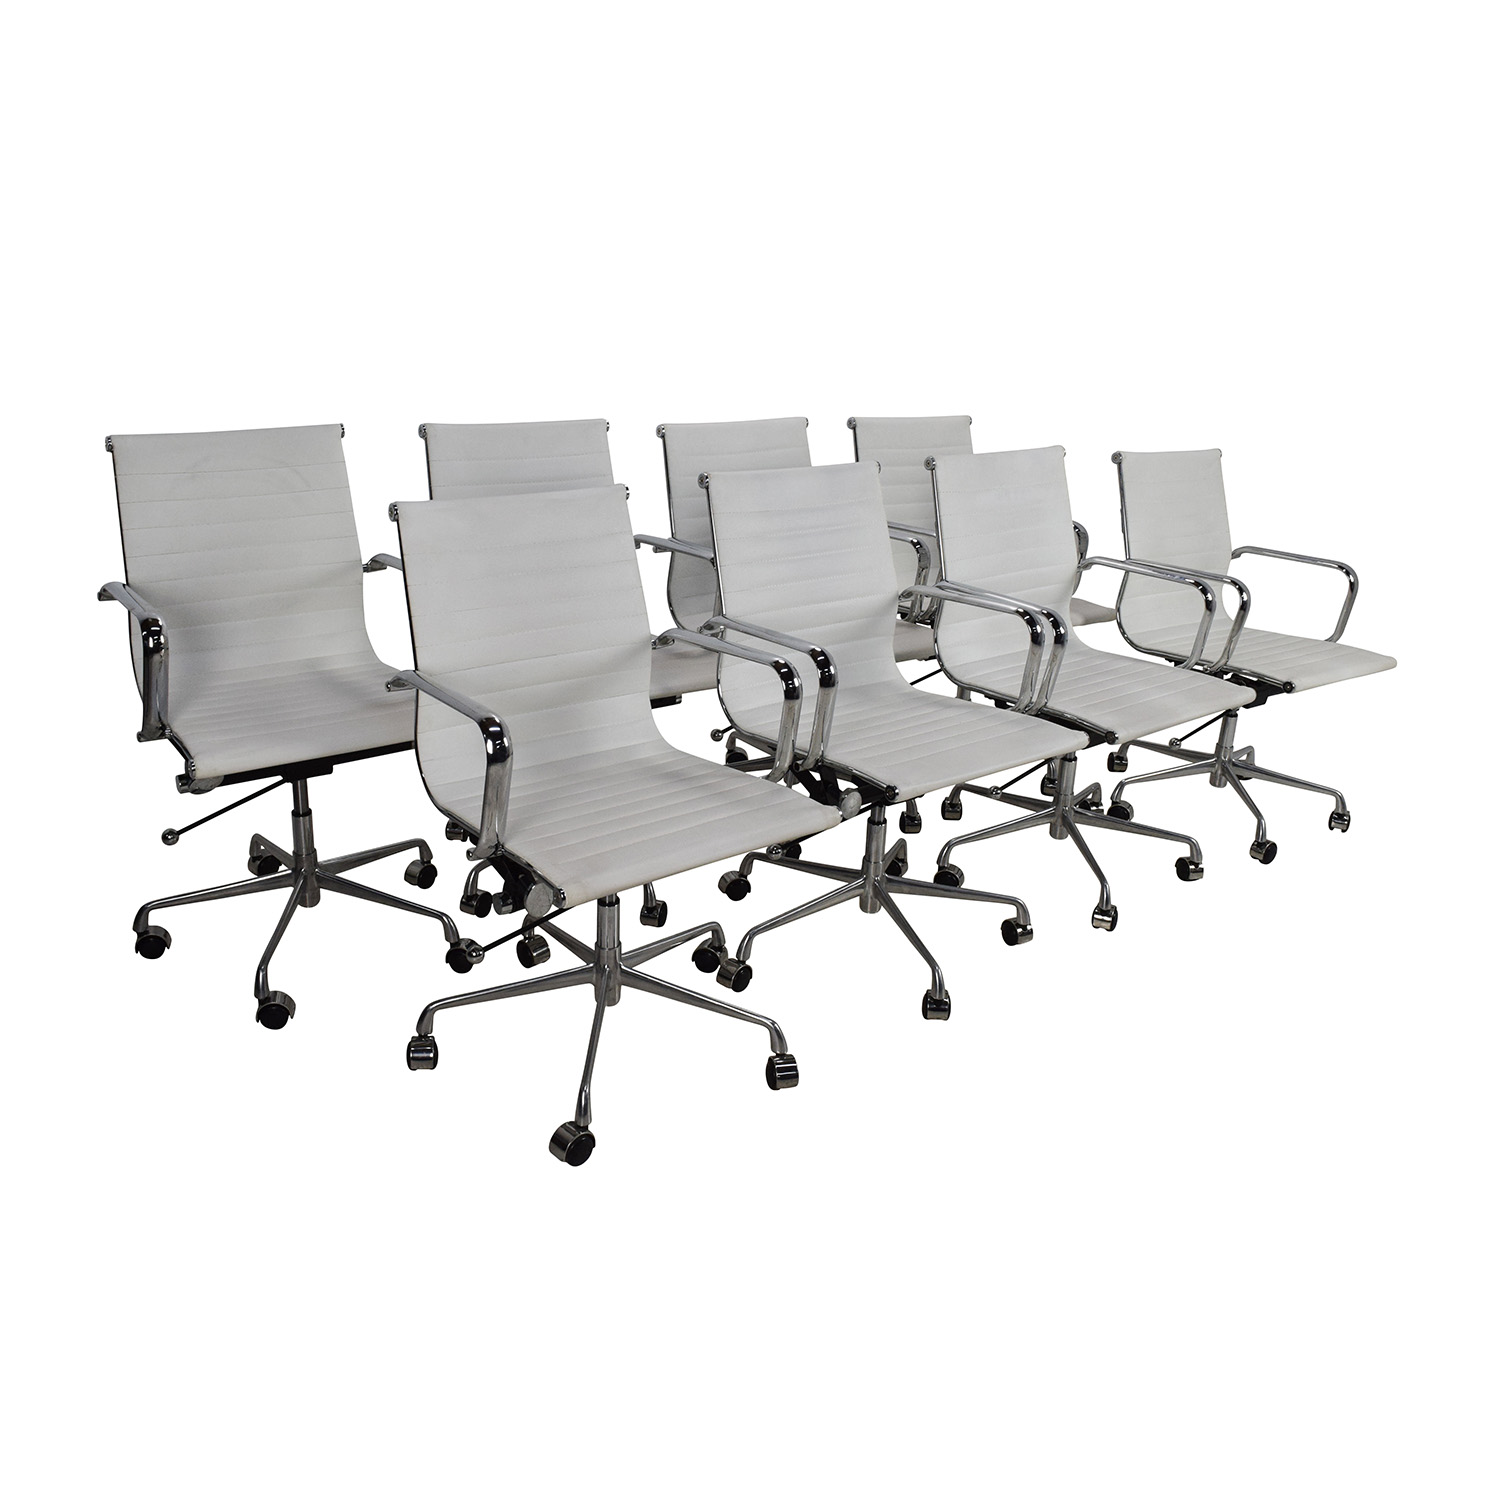 66 Off Laura Davidson Laura Davidson Eames Replica Office Chair Set Chairs